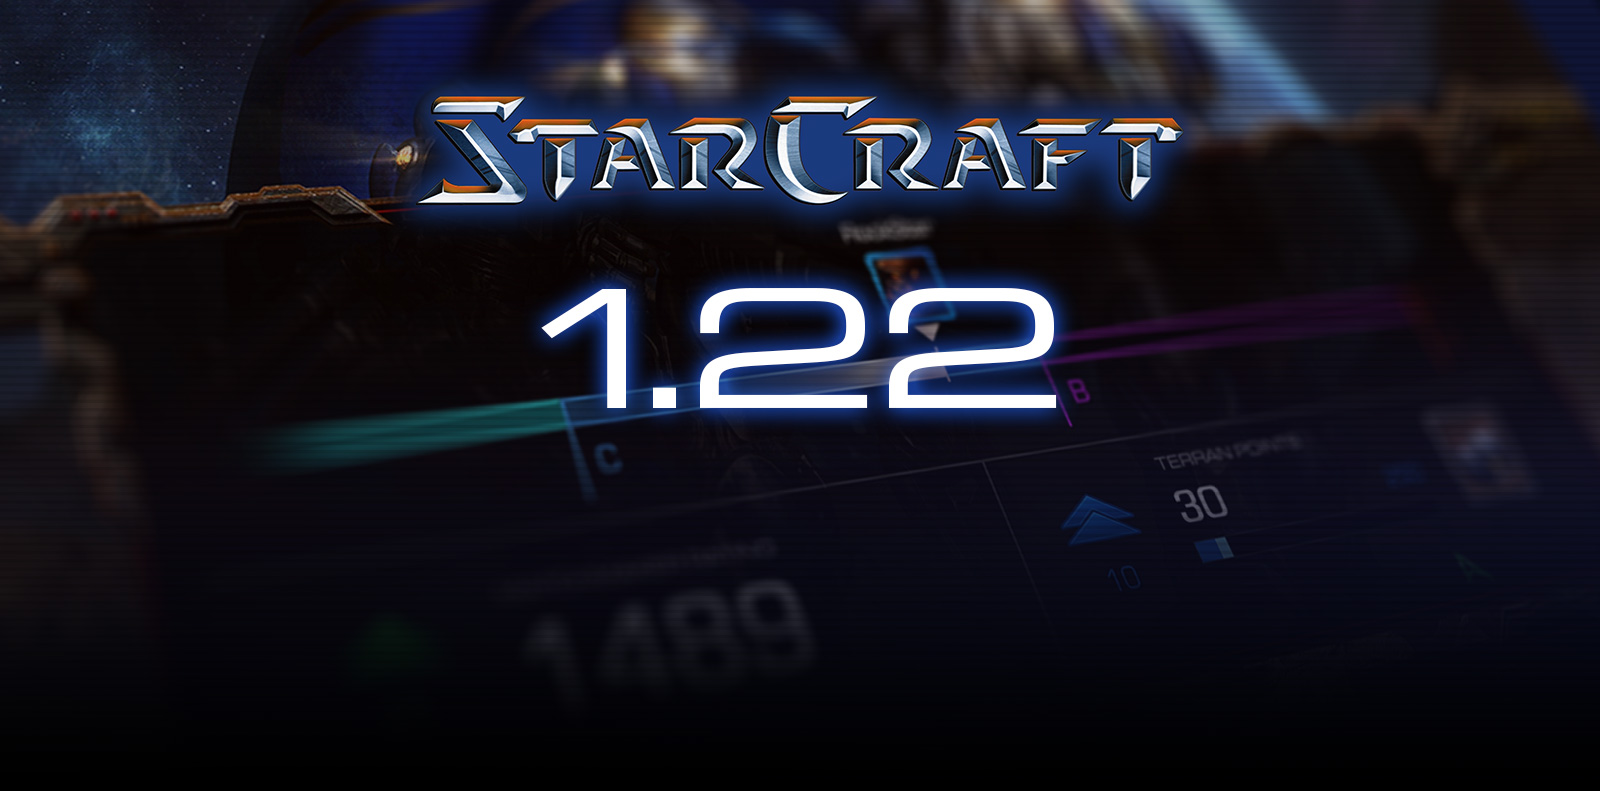 Parche 1.22.0 de StarCraft: Remastered